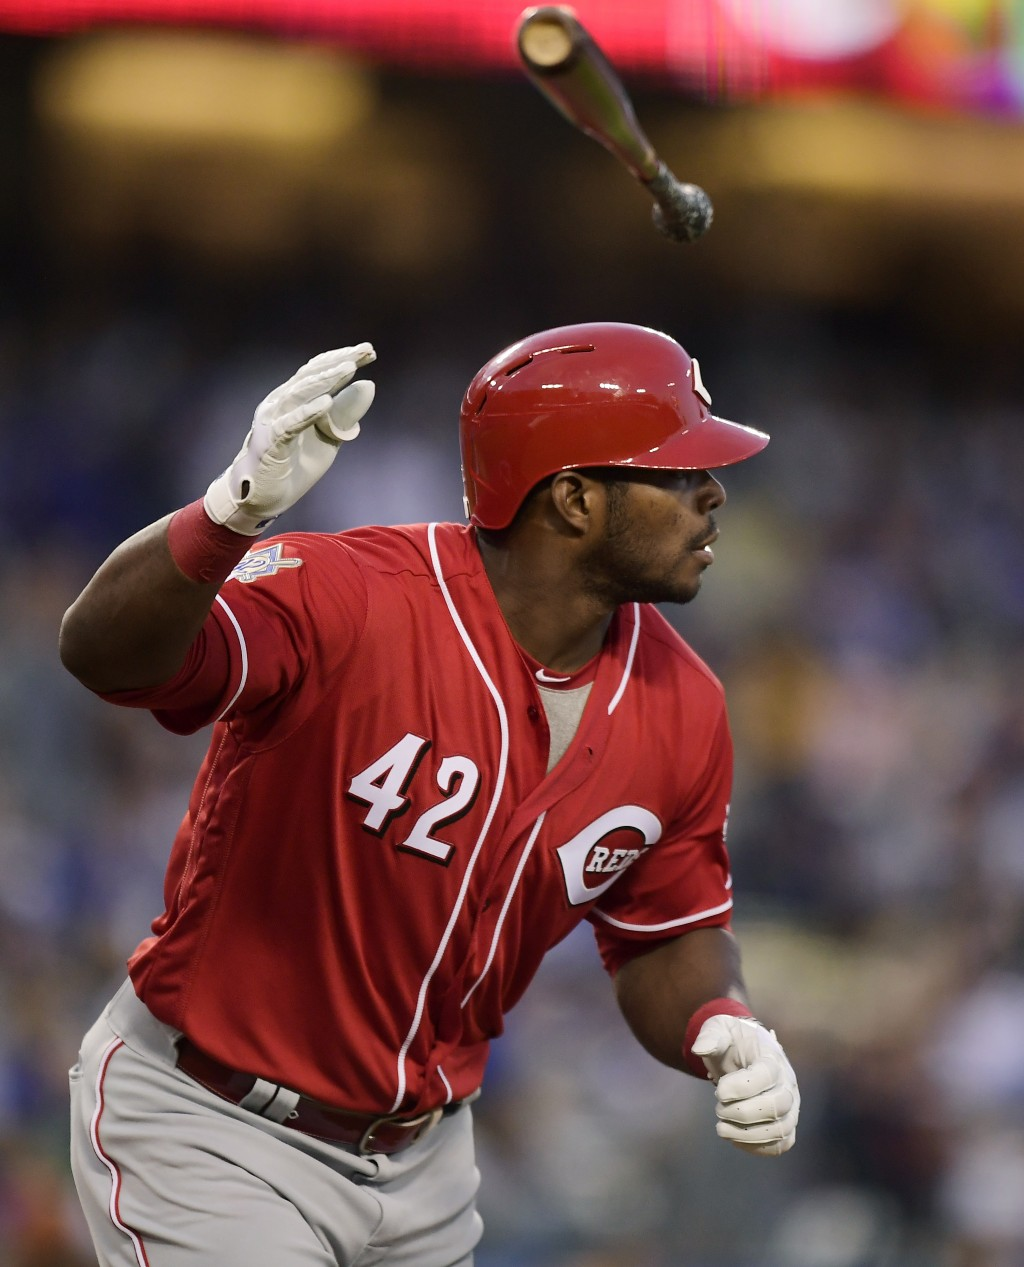 Cincinnati Reds' Yasiel Puig flips his bat after hitting a solo home run during the first inning of a baseball game against the Los Angeles Dodgers, M